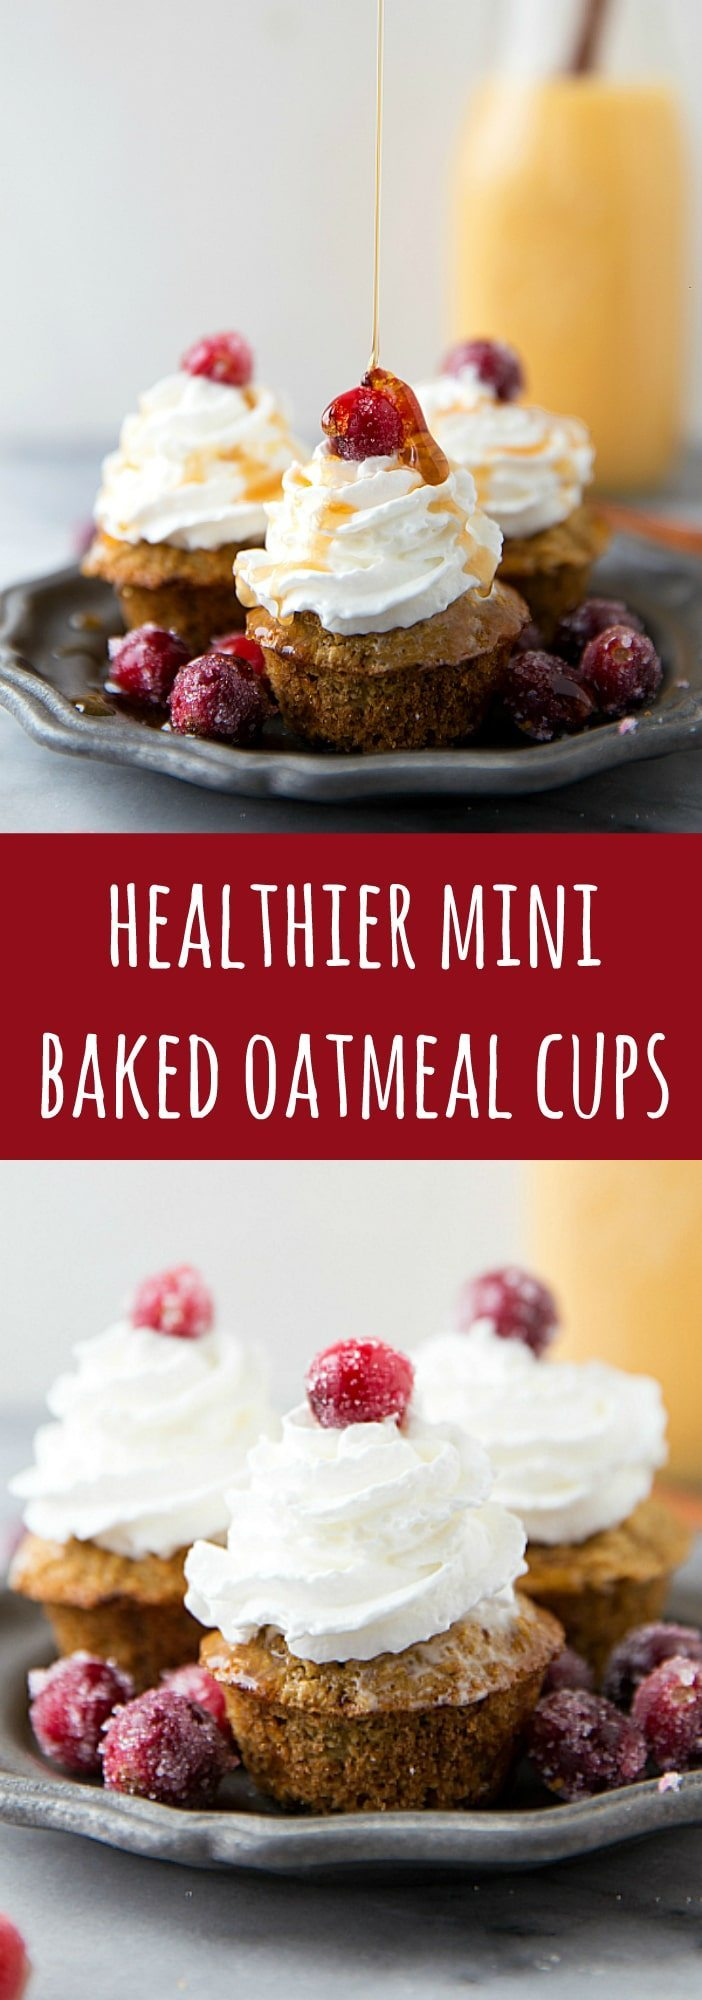 Quick and simple miniature baked oatmeal cups with an eggnog flavor. Made with healthier ingredients!